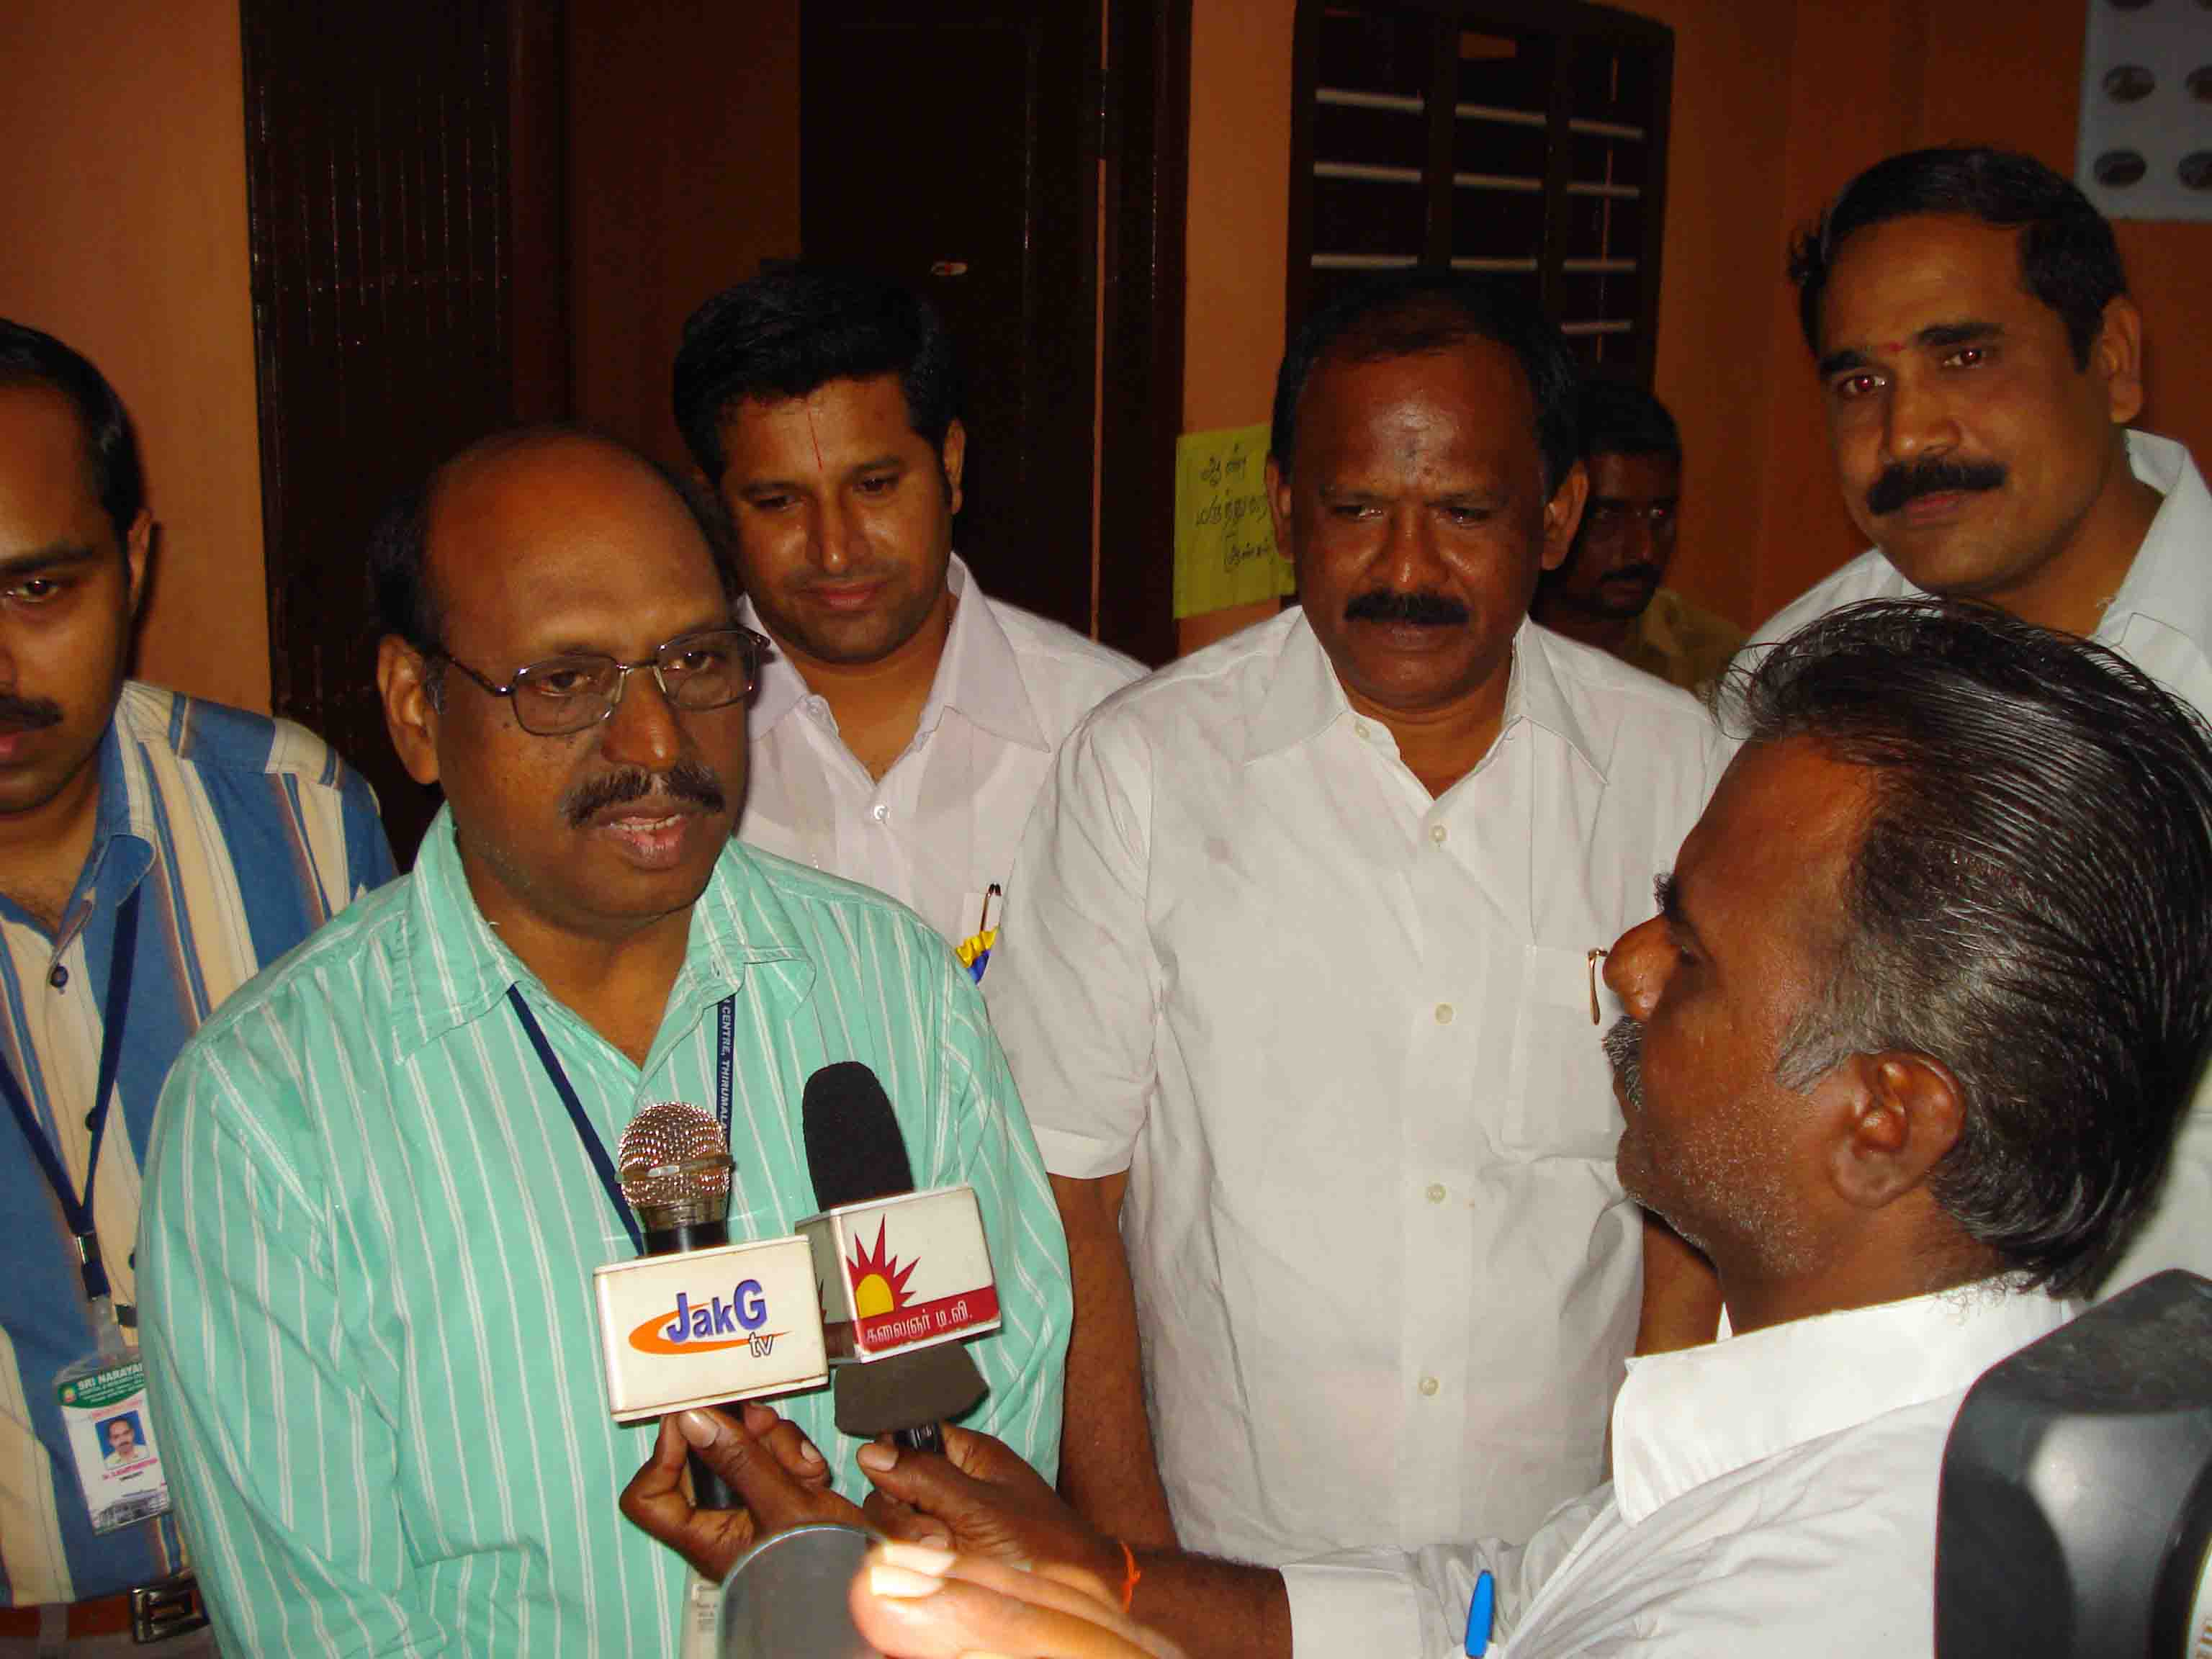 Dr. Varadhan speaks to the press on the services that are provided through the Medical Camps